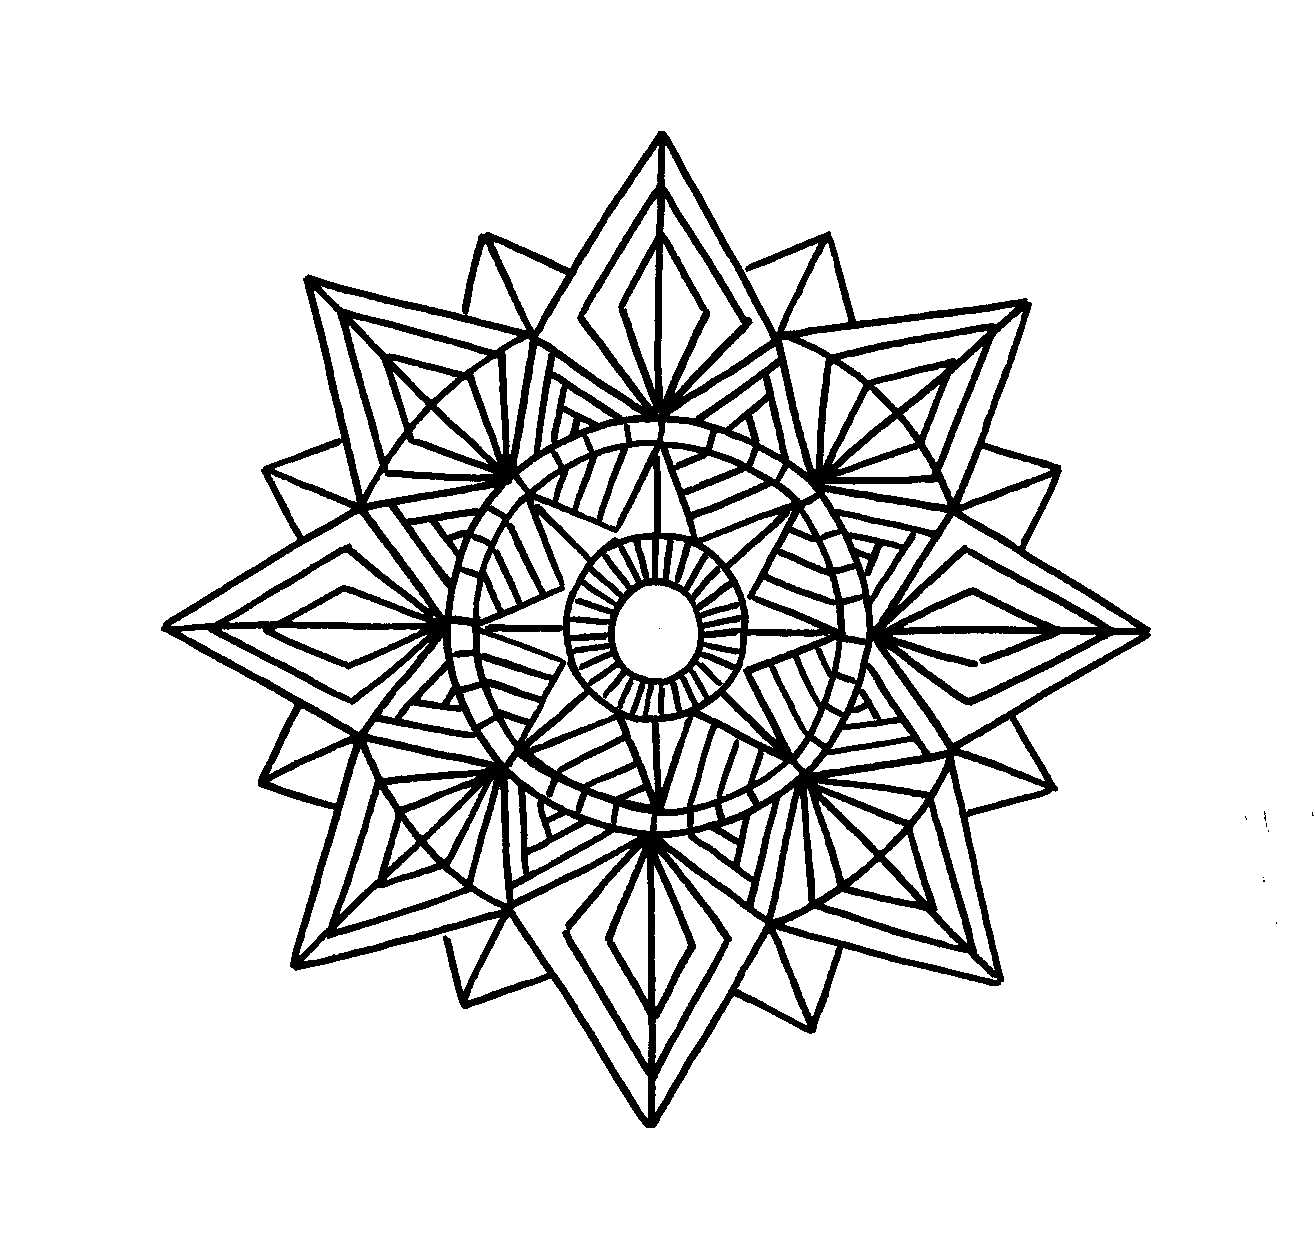 Challenger image intended for printable geometric coloring pages